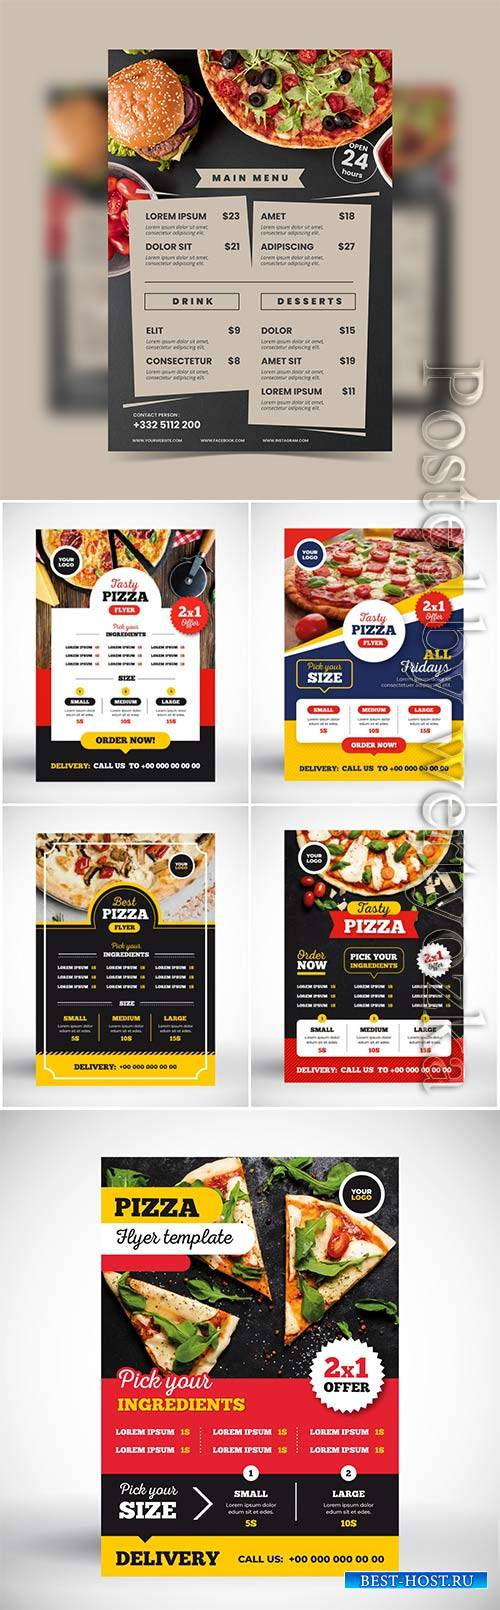 Pizza menu vector concept